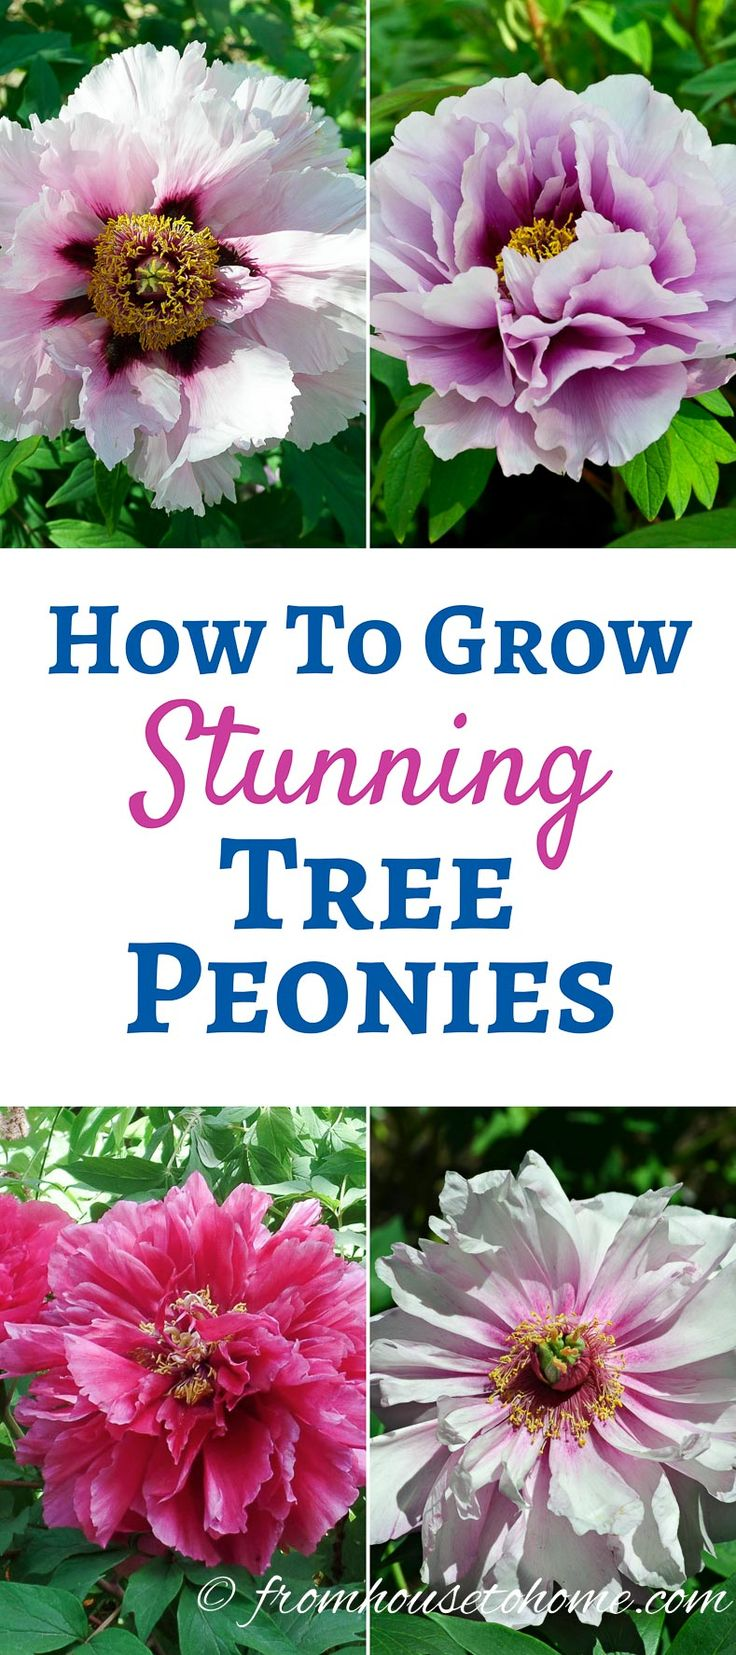 How To Grow Tree Peonies That Will Produce Huge Stunning Flowers | These tips on how to care for tree peonies really help to make sure the plants are healthy and add their beautiful blooms to the garden.